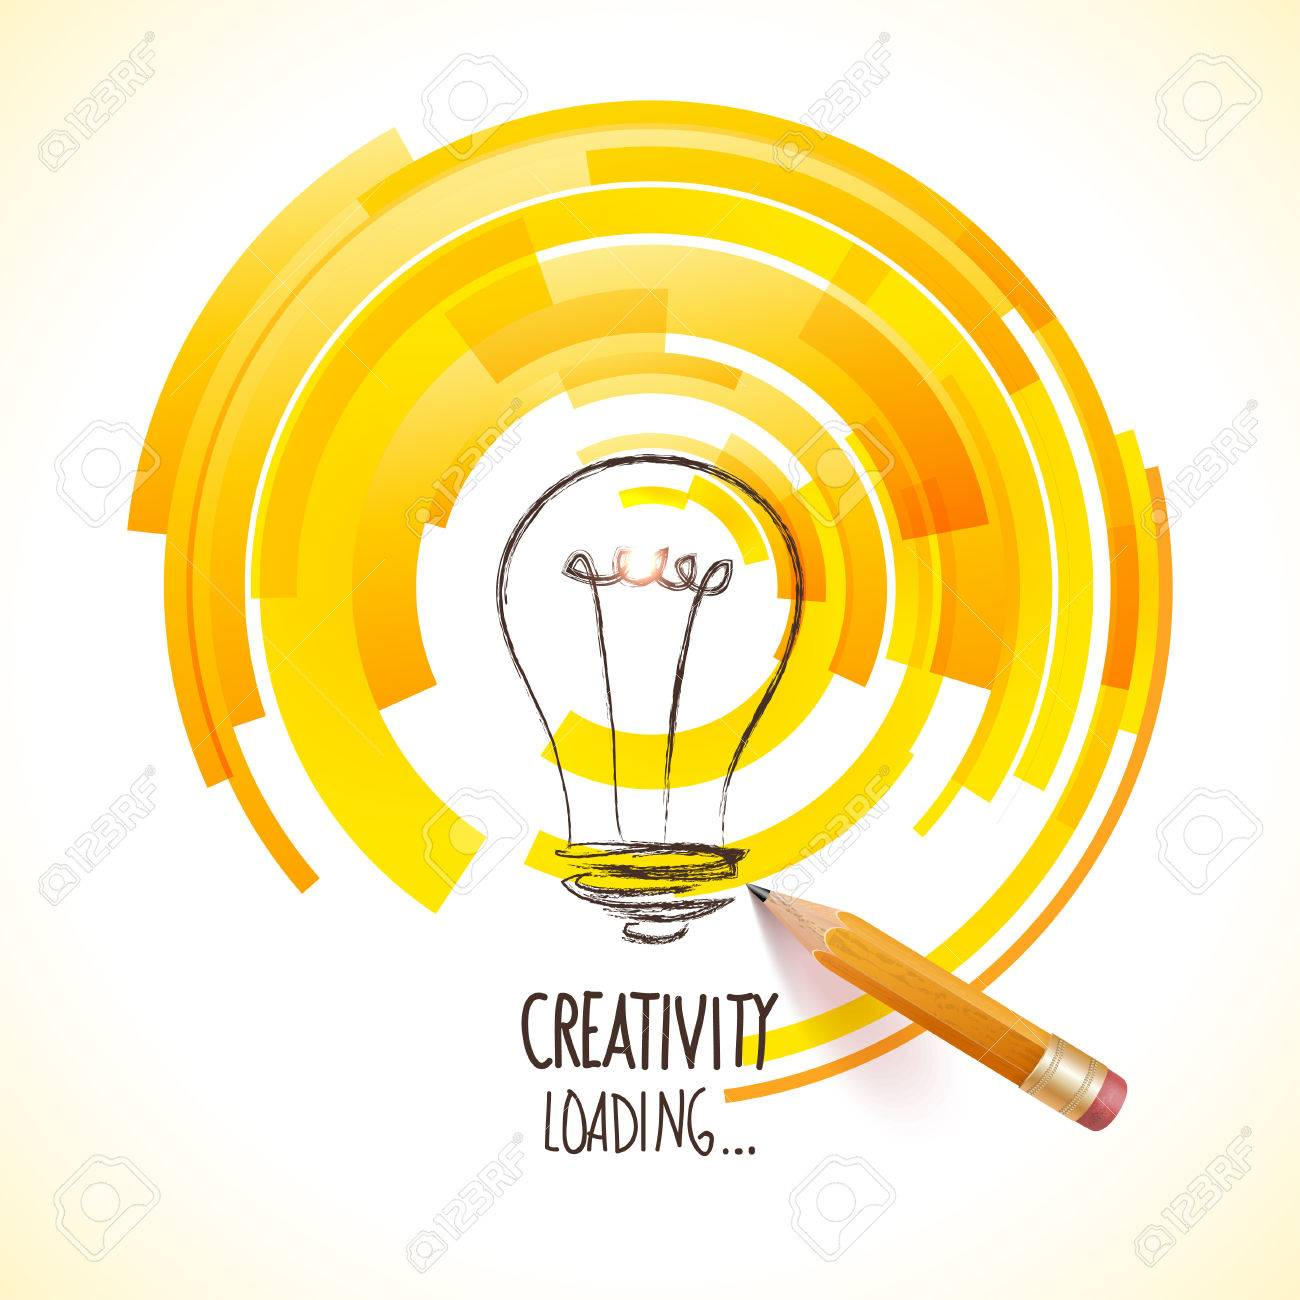 symbol of creative business visions - 38623420